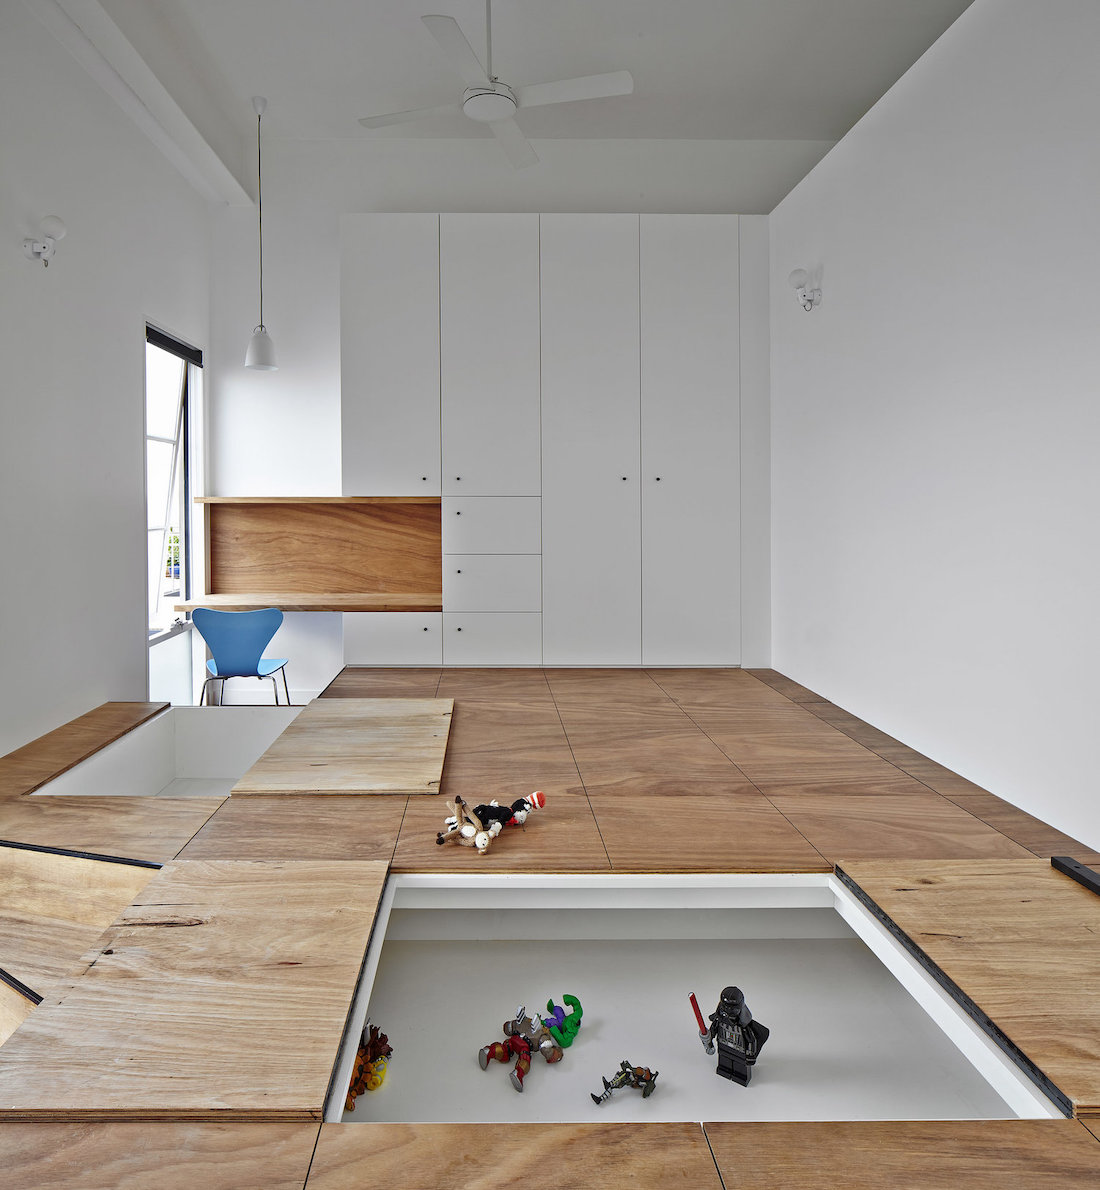 Toy box built into the floor